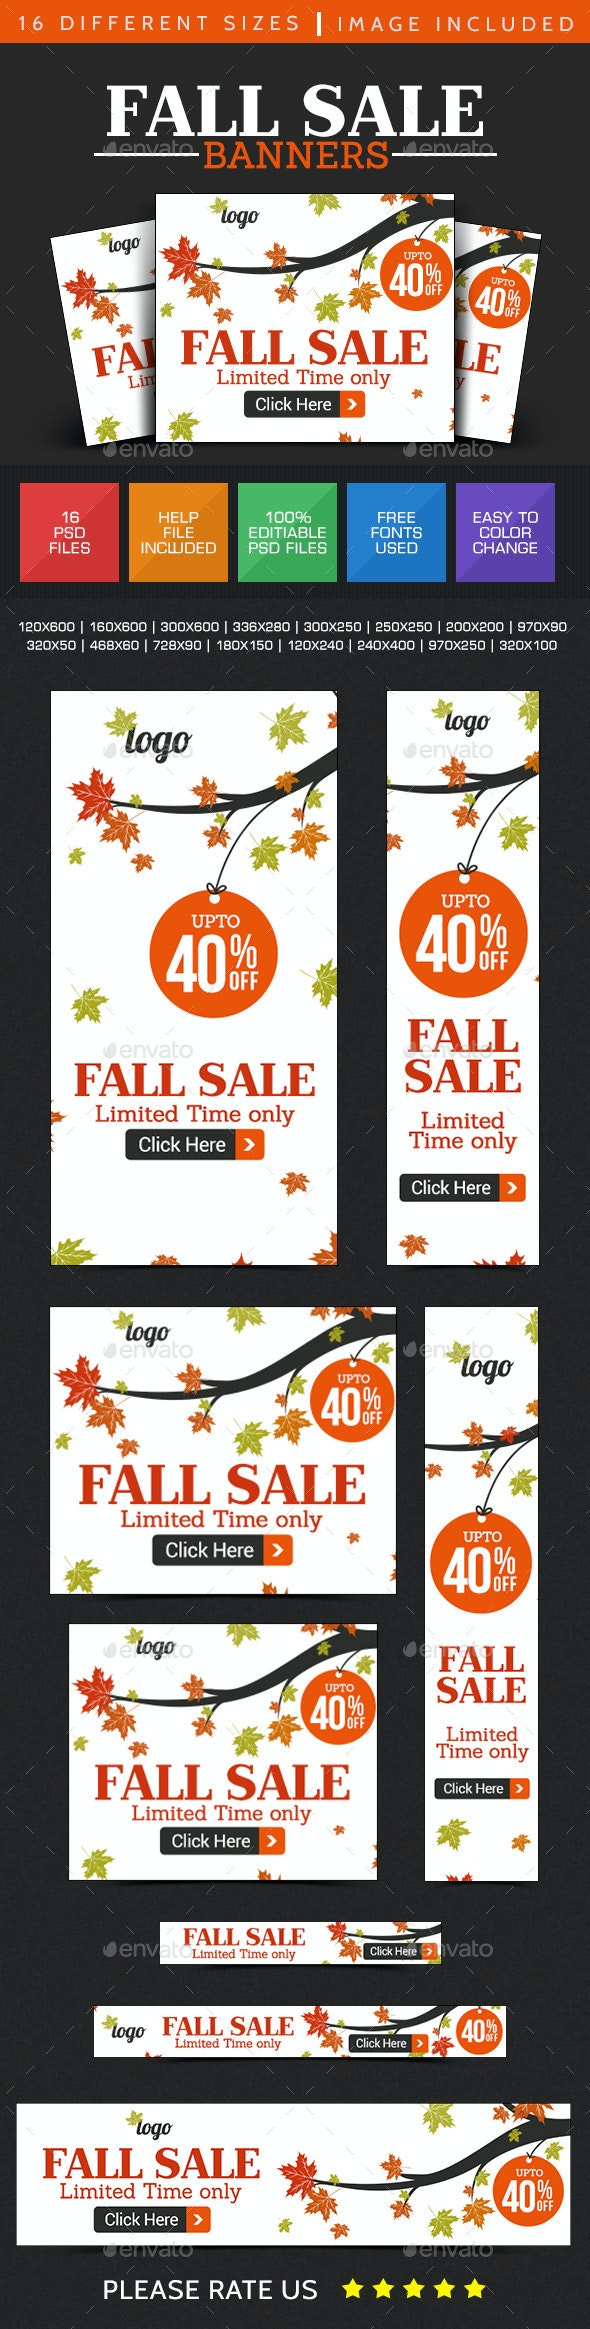 Fall Sale Banner Design - Banners & Ads Web Elements